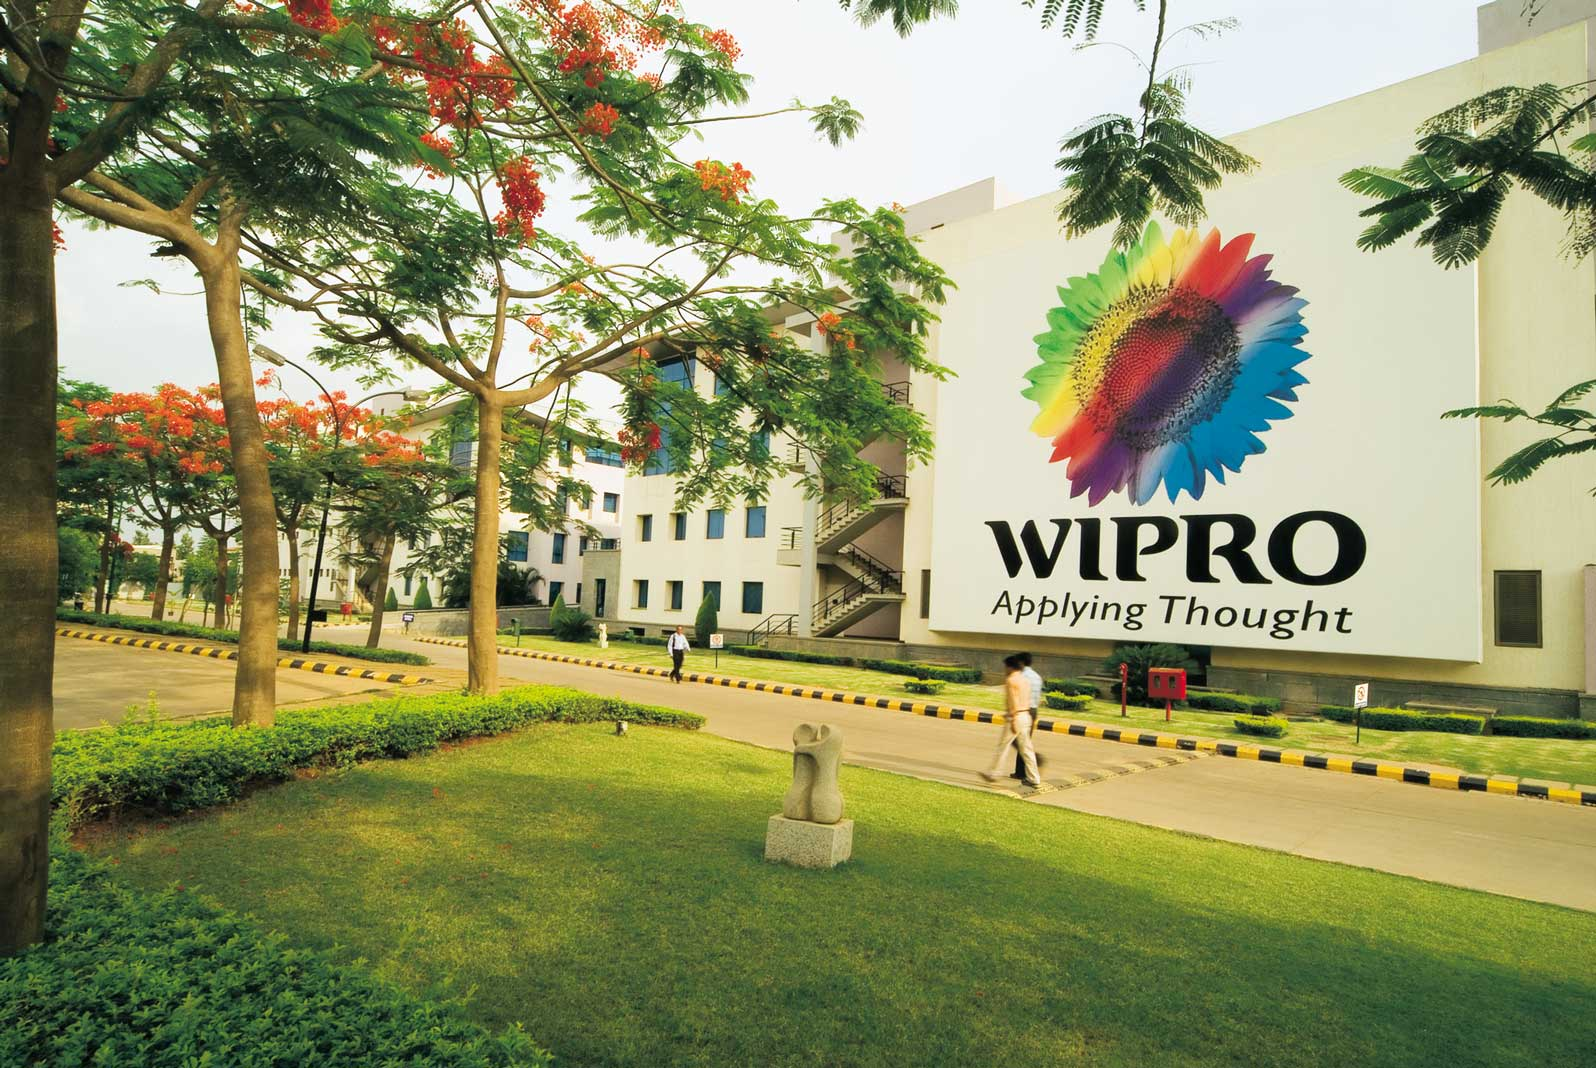 wipro technologies See 1 photo from 40 visitors to wipro technologies.